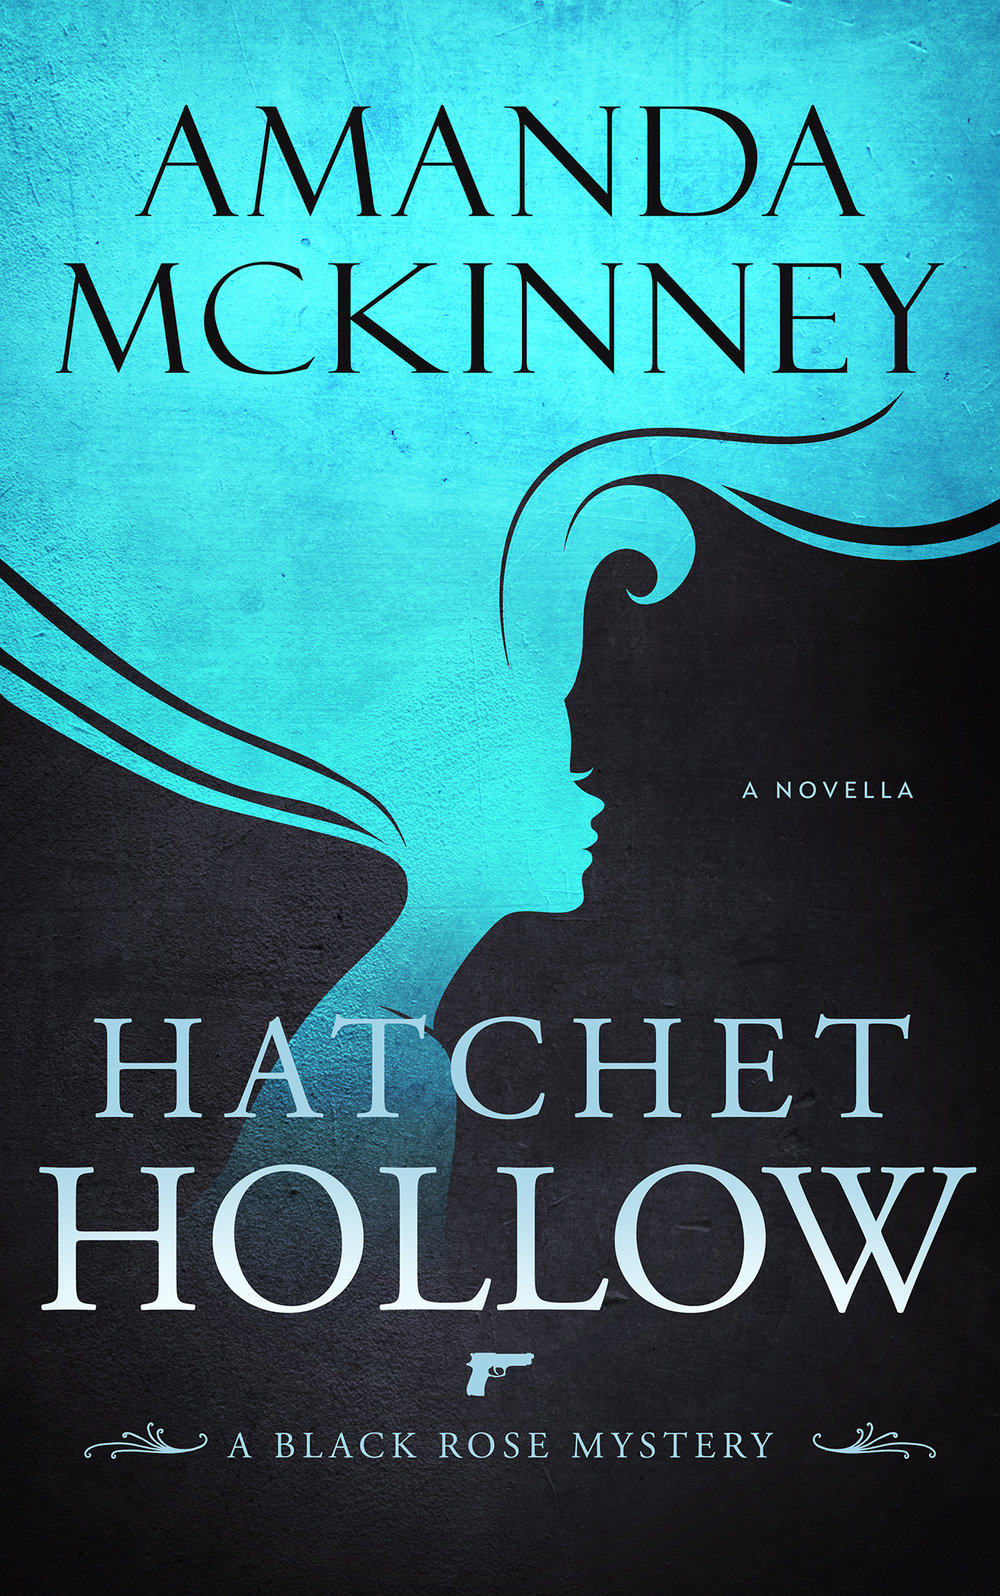 Hatchet Hollow - eBook small.jpg